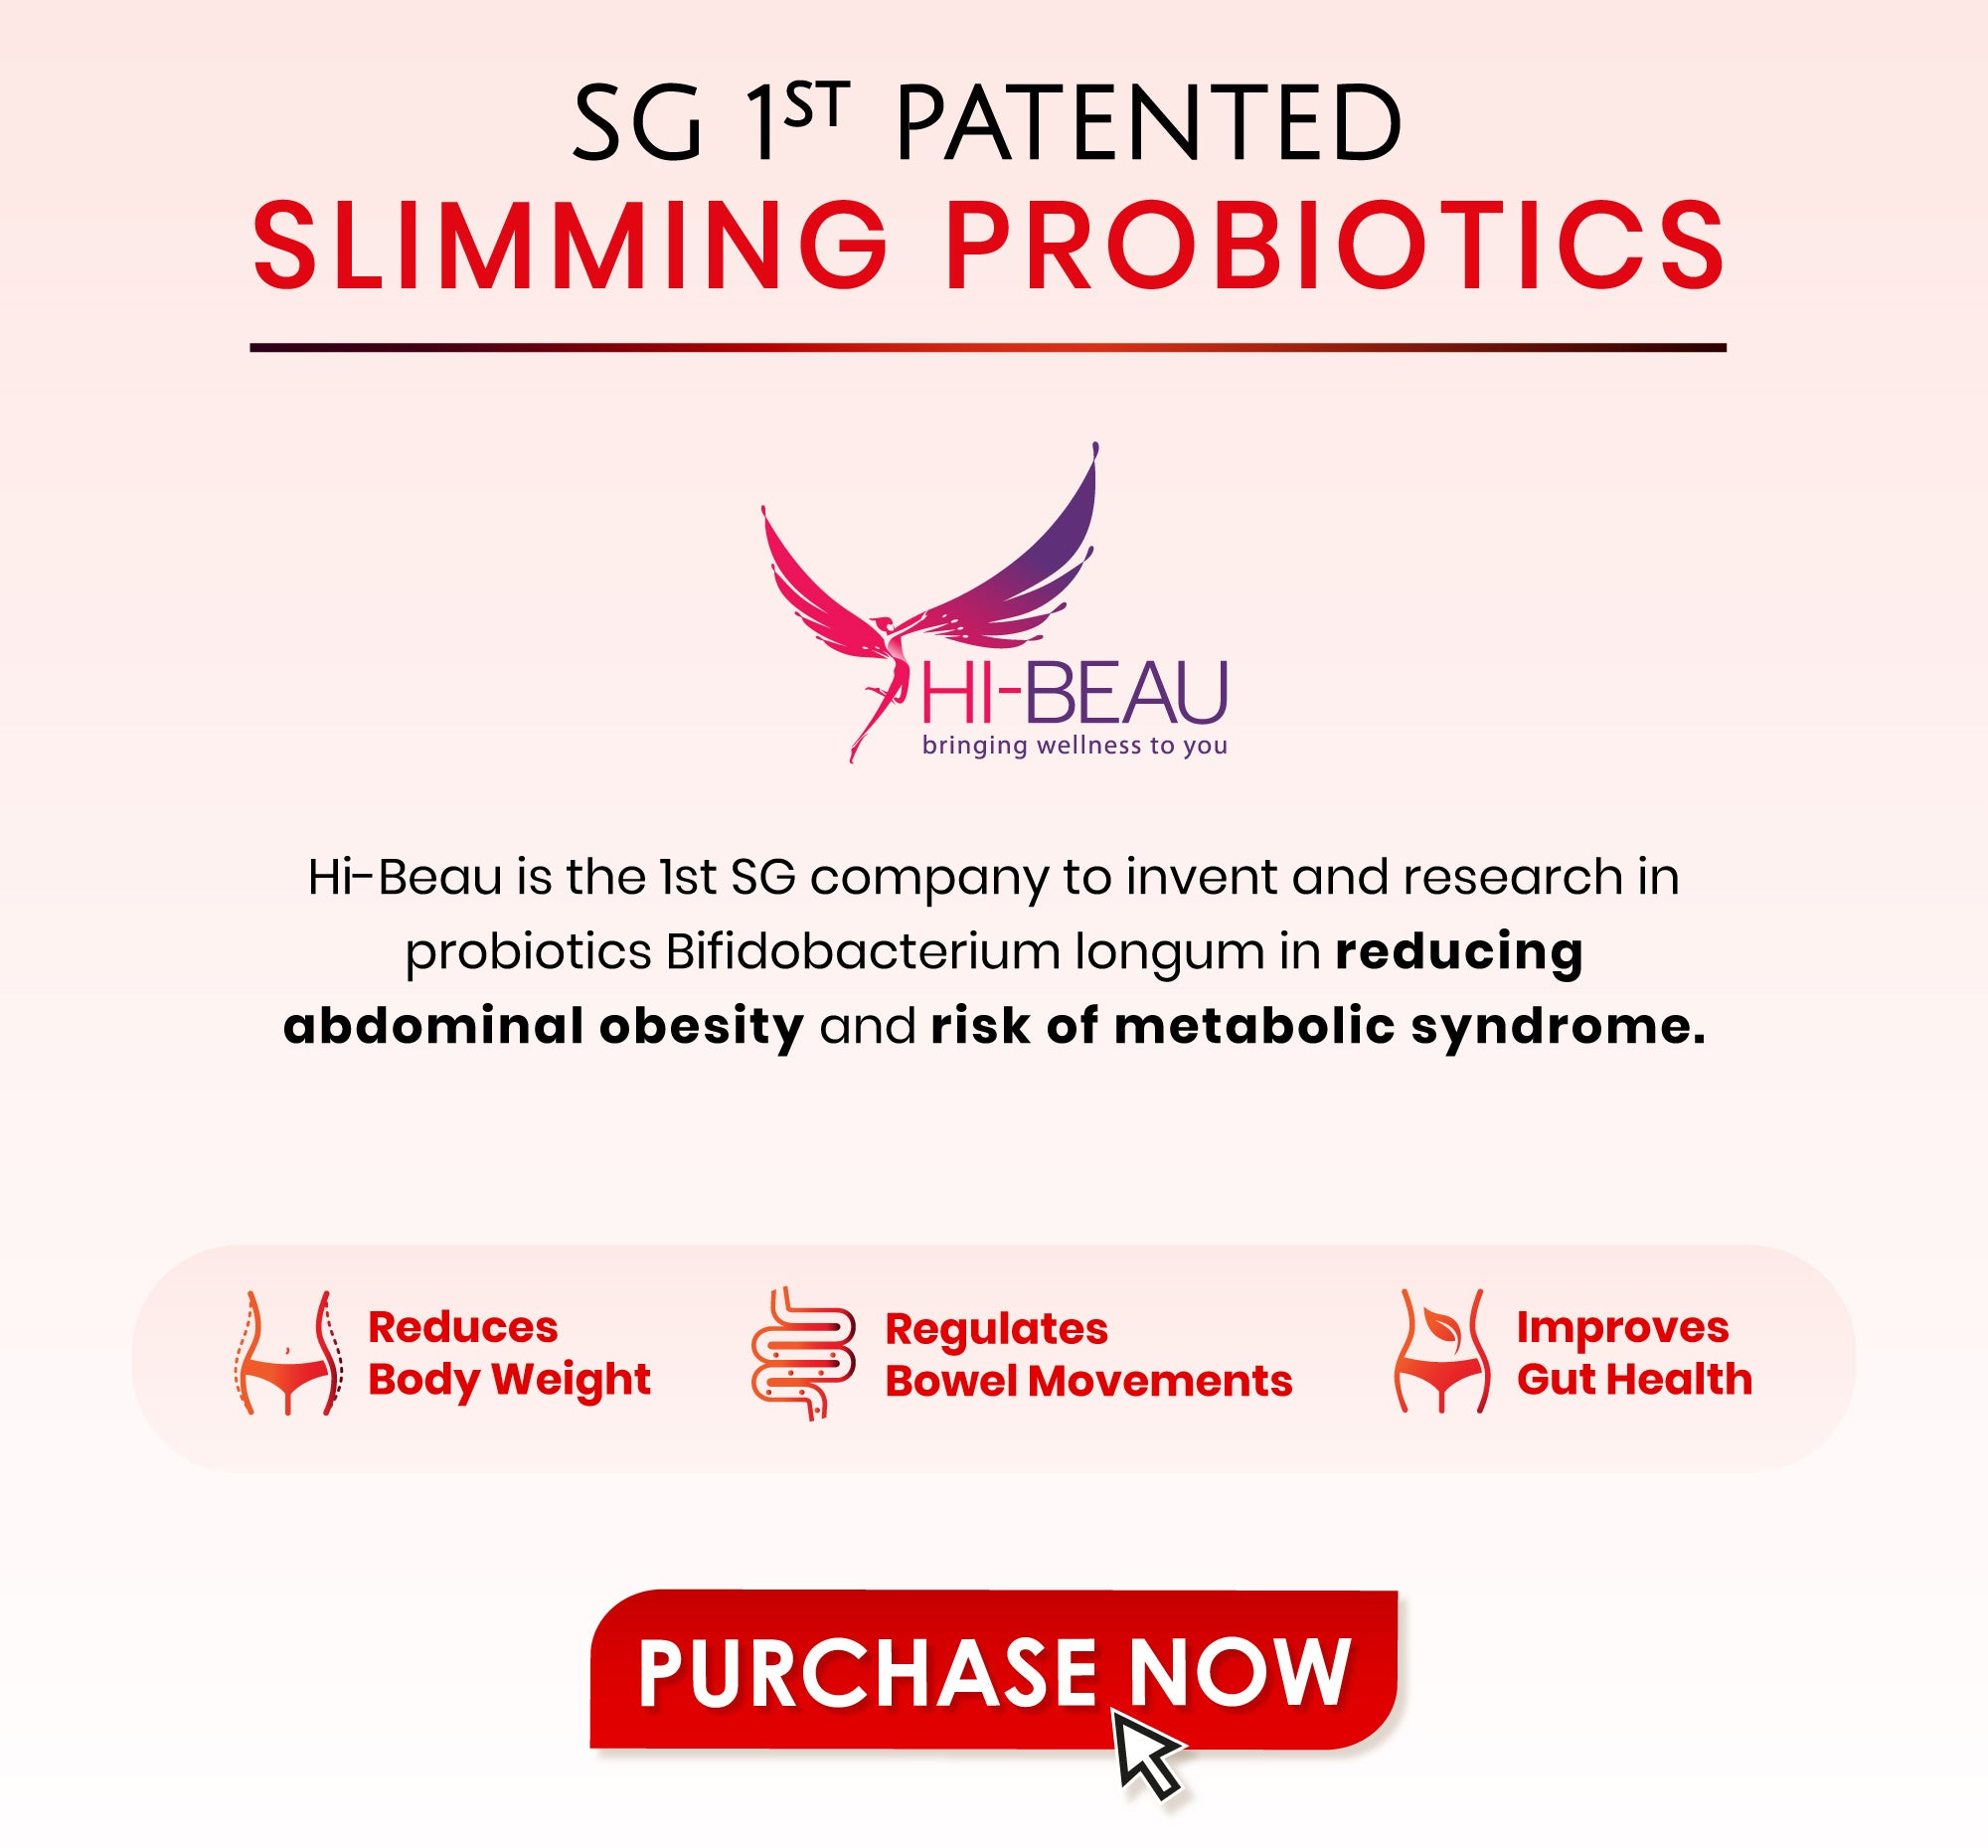 Hi-Beau International Pte Ltd is the first company in Singapore to invent and research in probiotics, Bifidobacterium longum in reducing abdominal obesity and risk of metabolic syndrome.